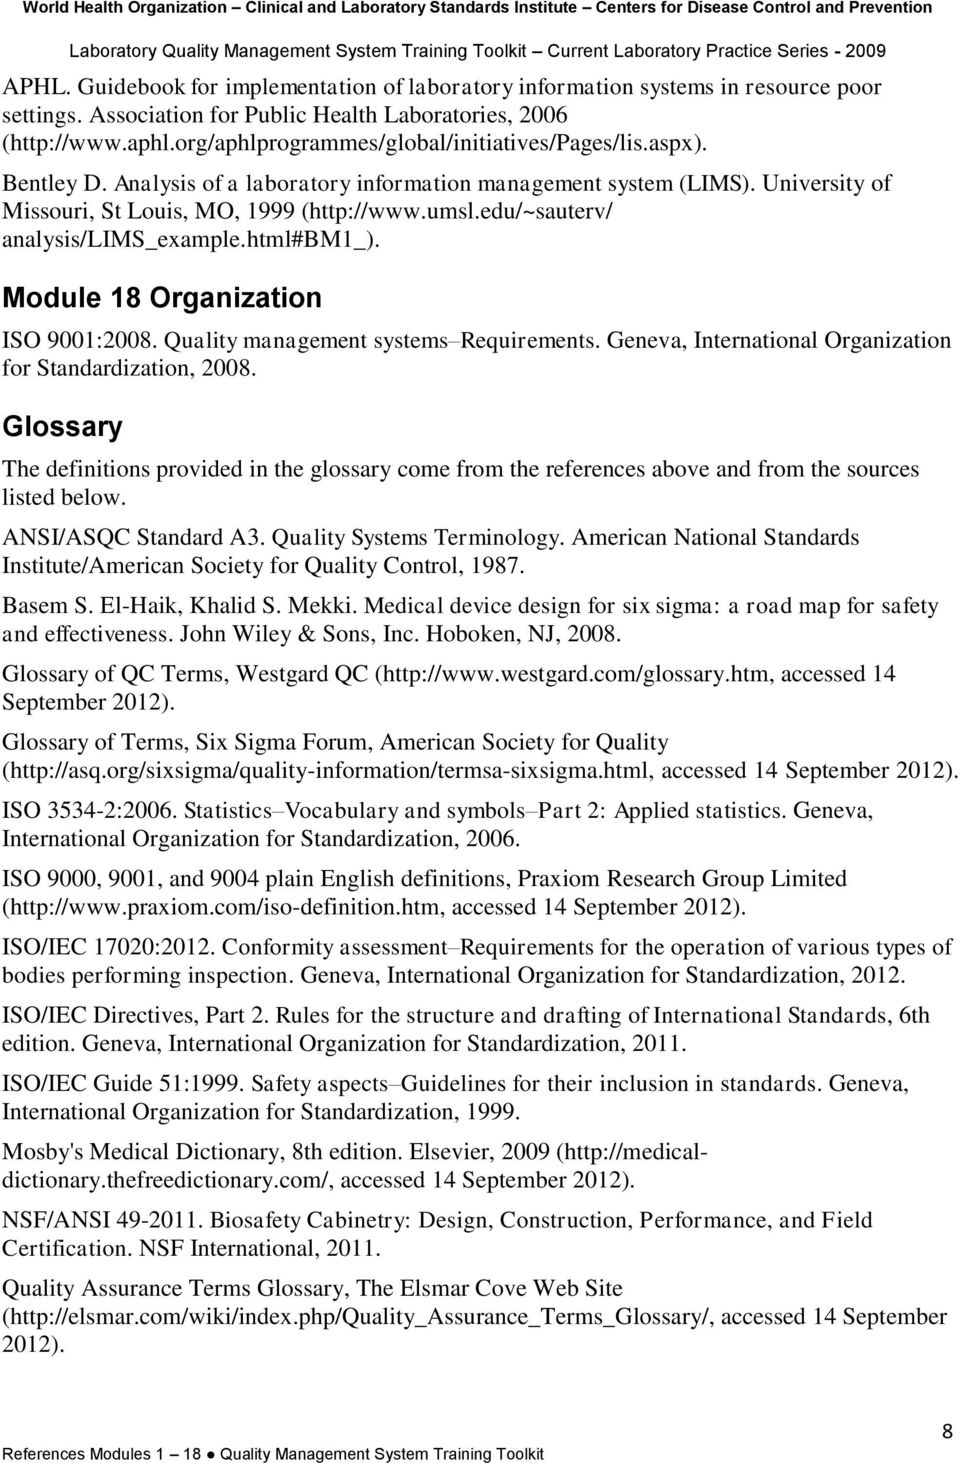 References and resources by module - PDF